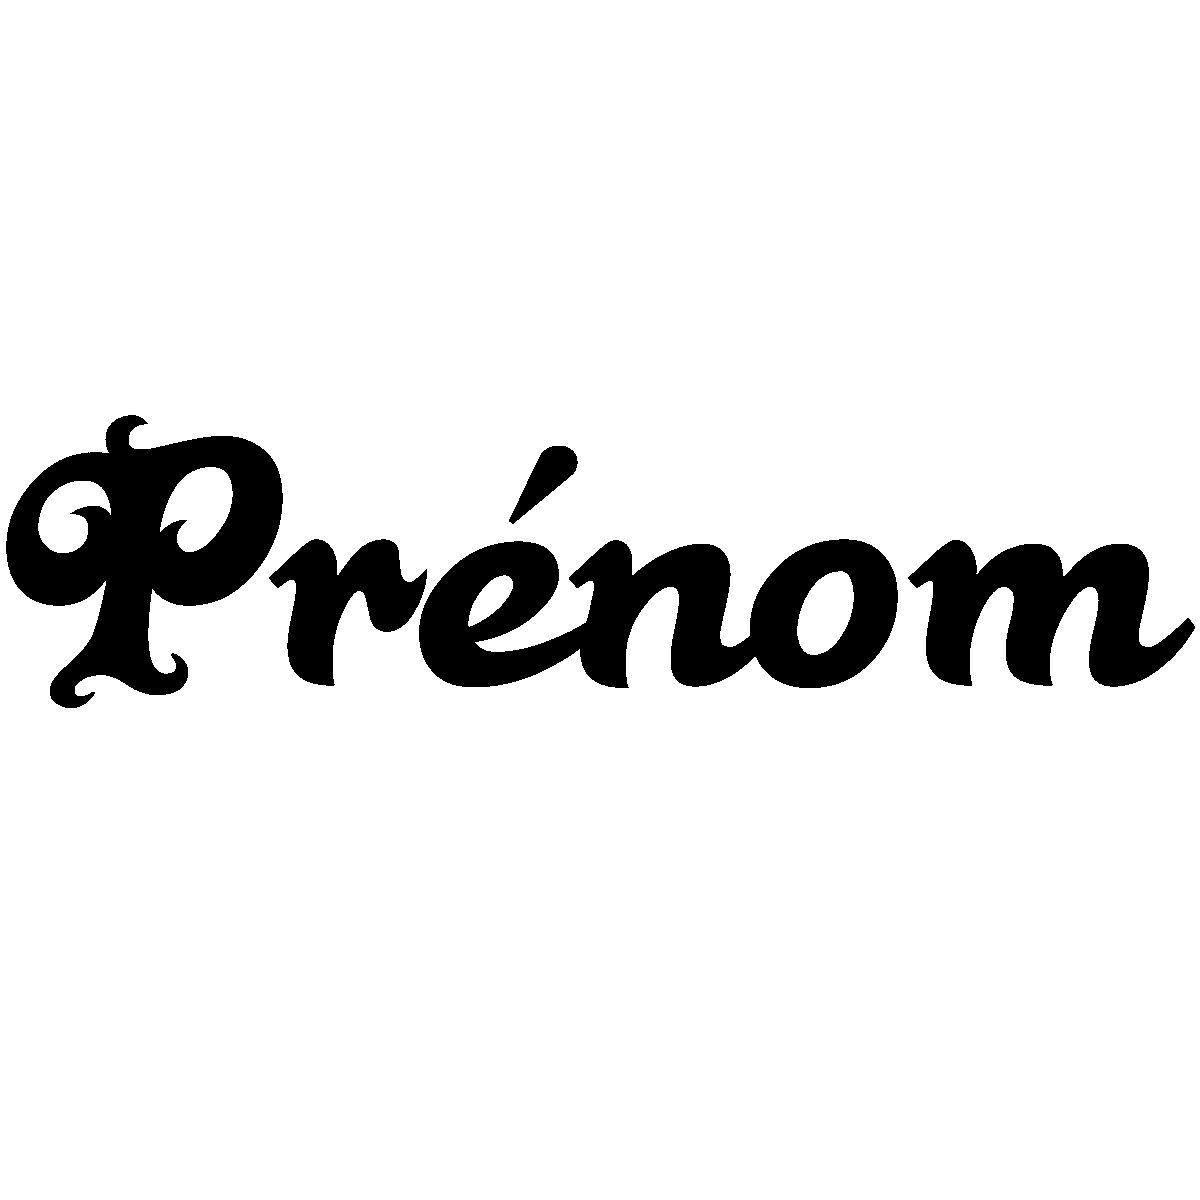 sticker pr nom personnalis vintage 1940 s stickers chambre enfants pr noms ambiance sticker. Black Bedroom Furniture Sets. Home Design Ideas